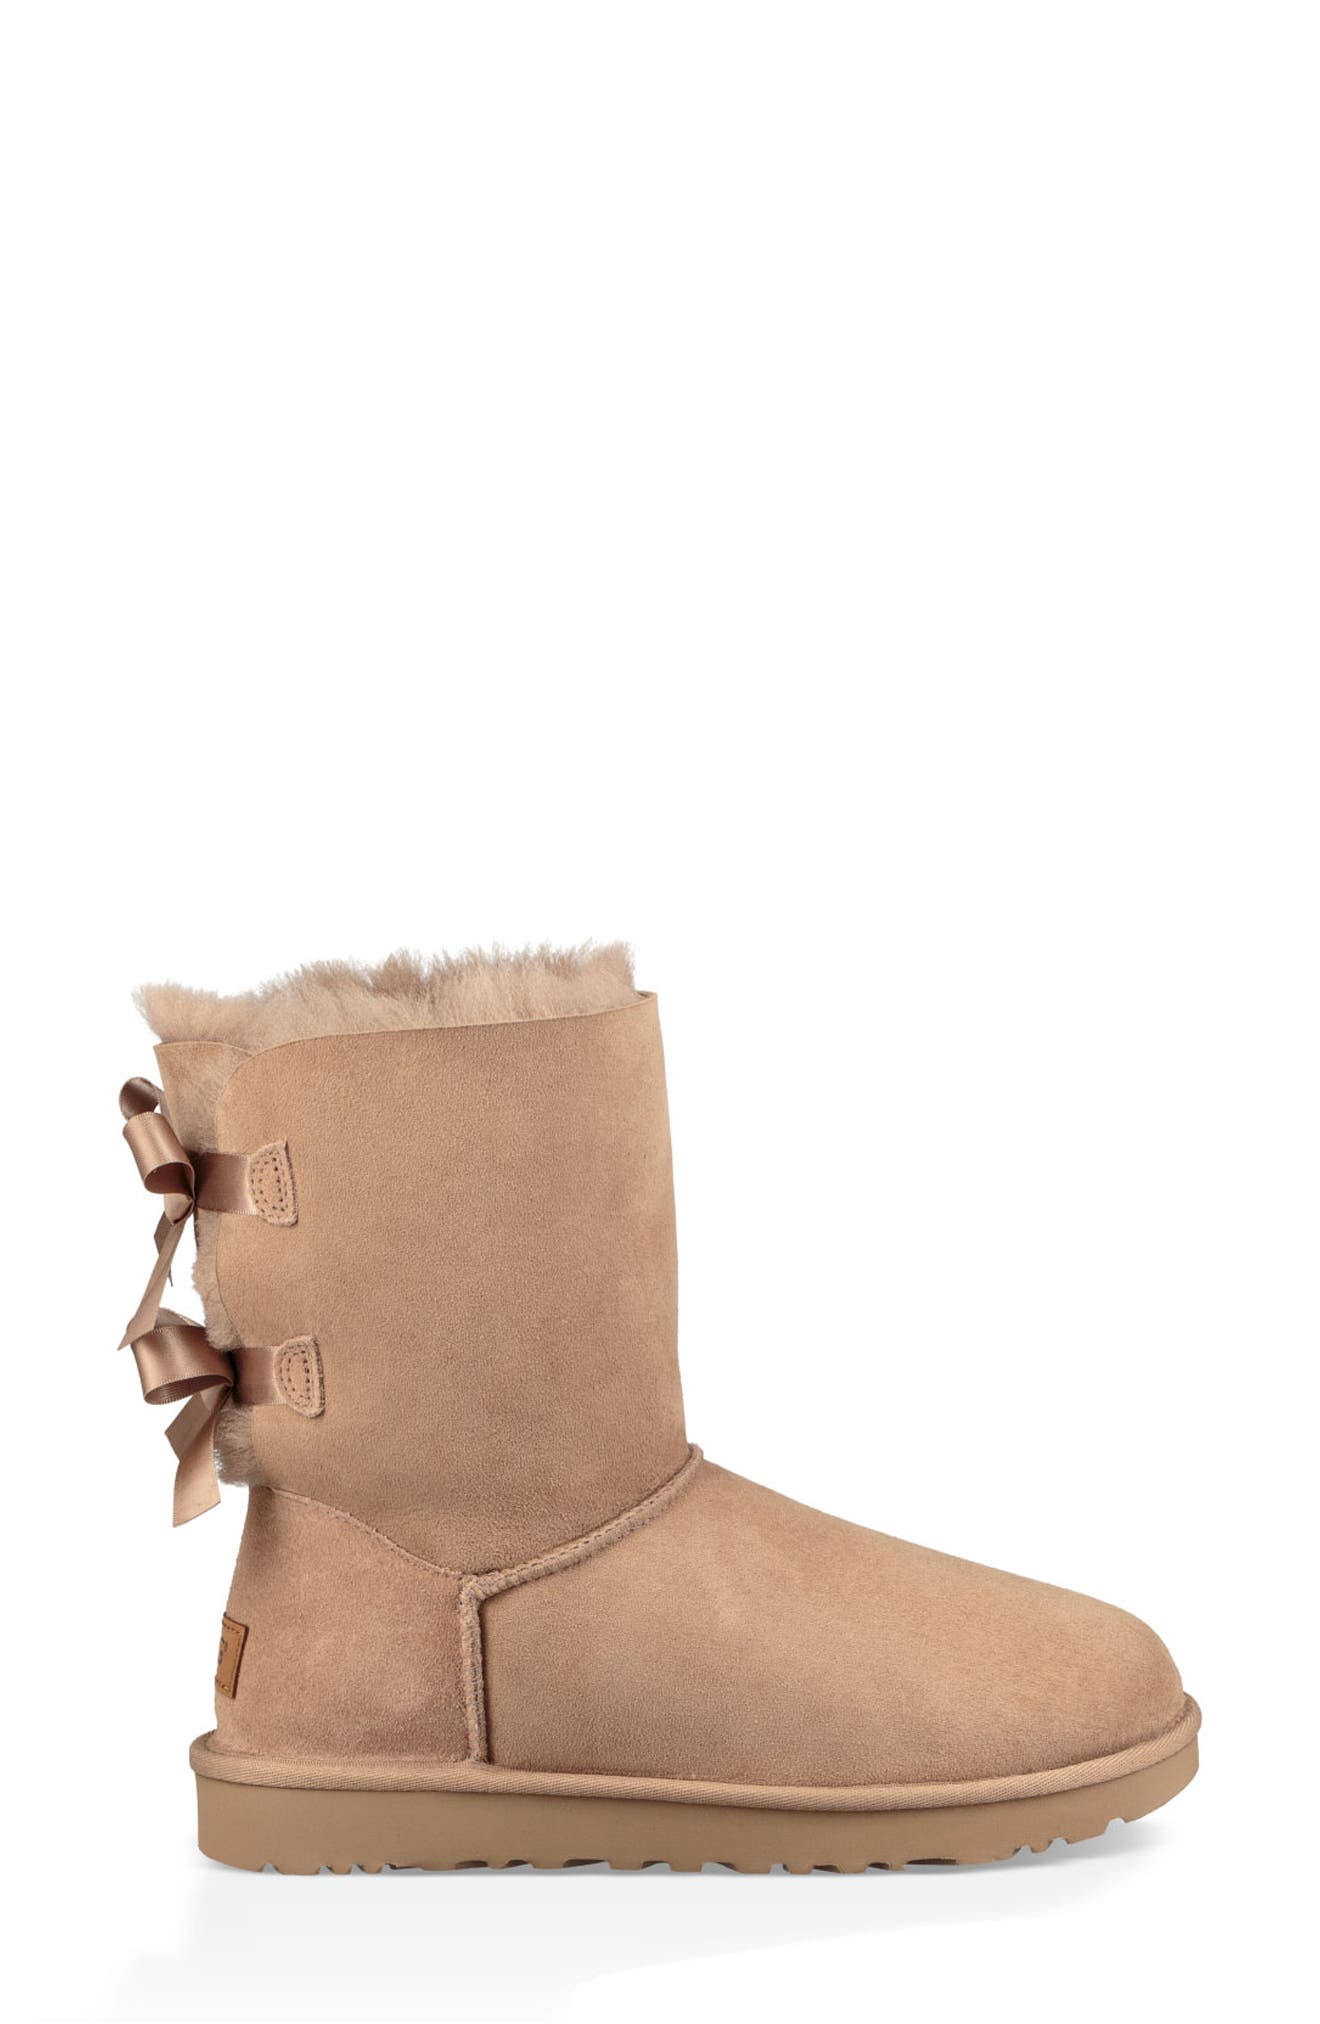 'Bailey Bow II' Boot,                             Alternate thumbnail 3, color,                             FAWN